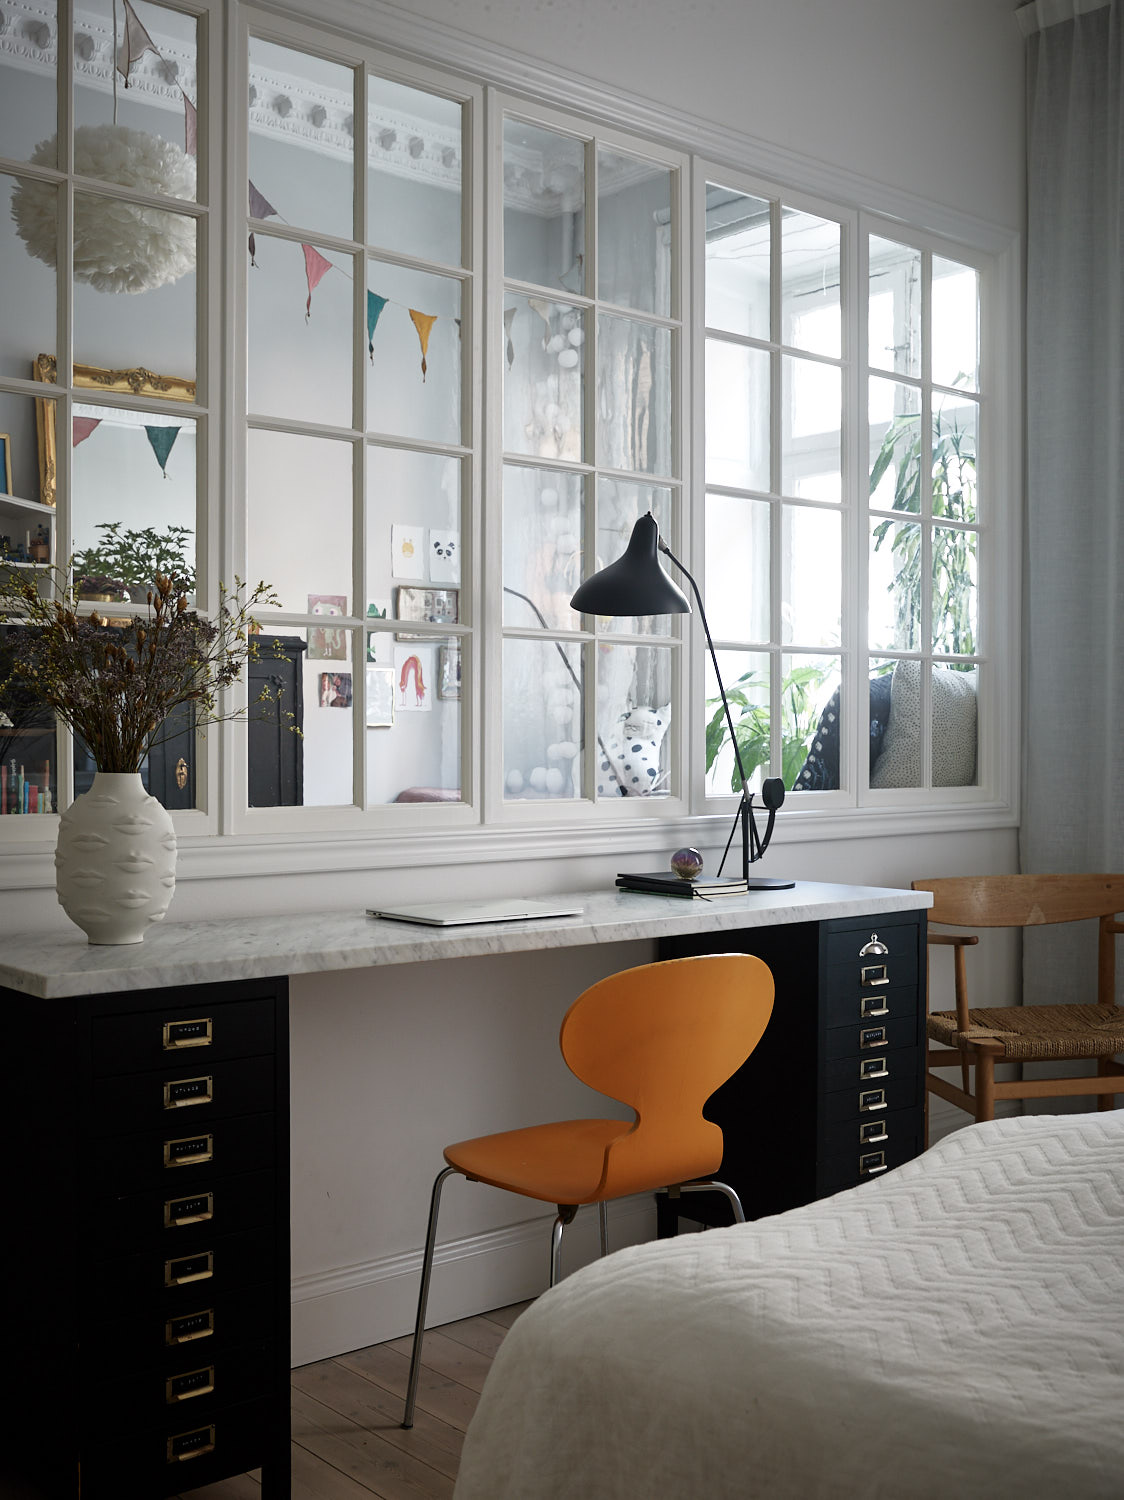 The Nordroom - A Stockholm Family Apartment with Charming Kids Bedrooms